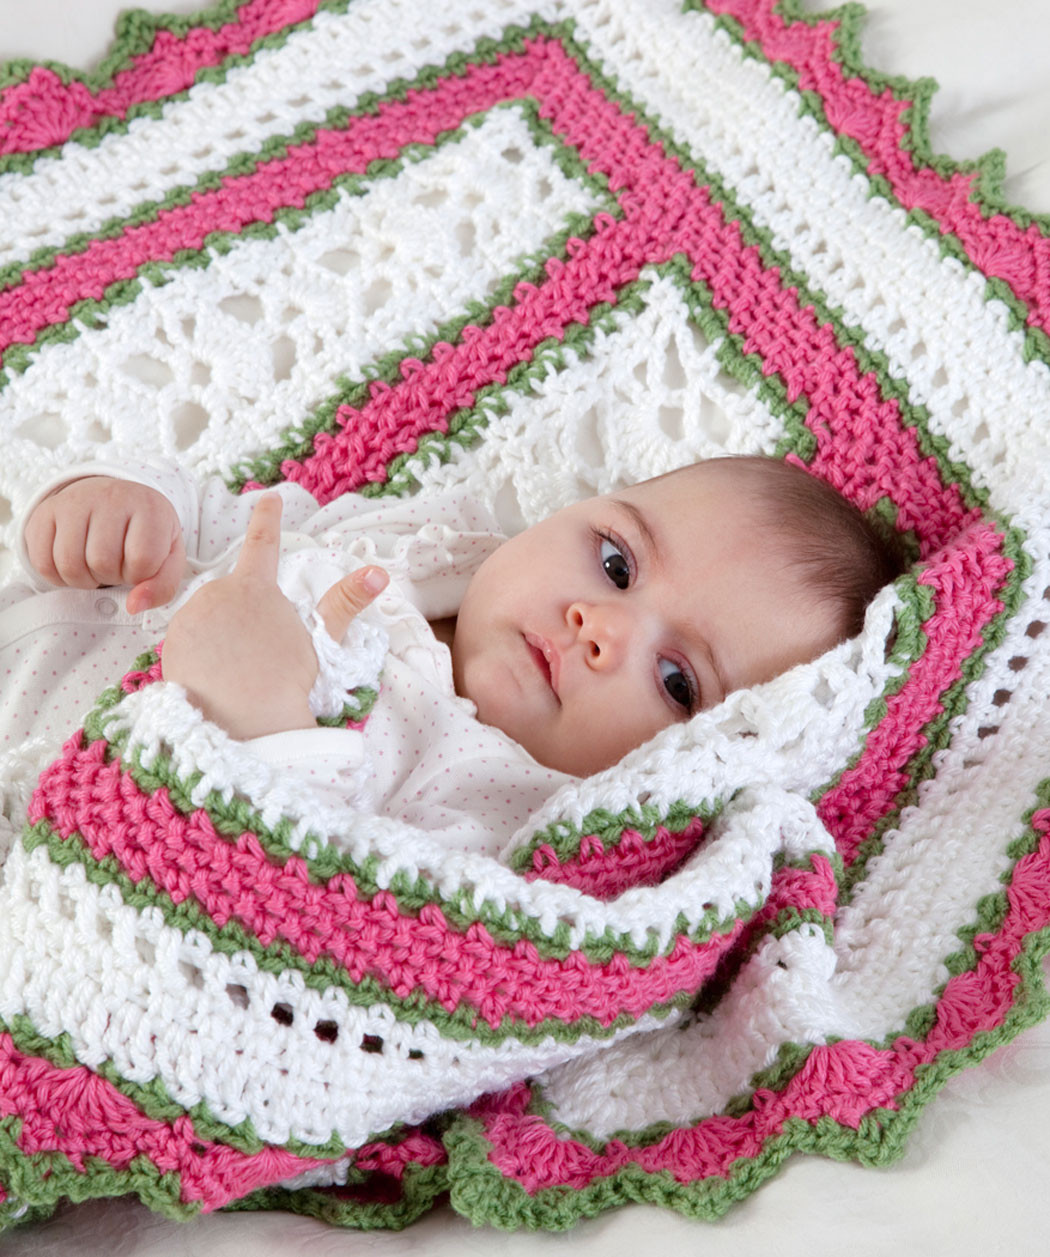 Beautiful 10 Beautiful Baby Blanket Free Patterns Free Crochet Patterns for toddlers Of Brilliant 47 Photos Free Crochet Patterns for toddlers